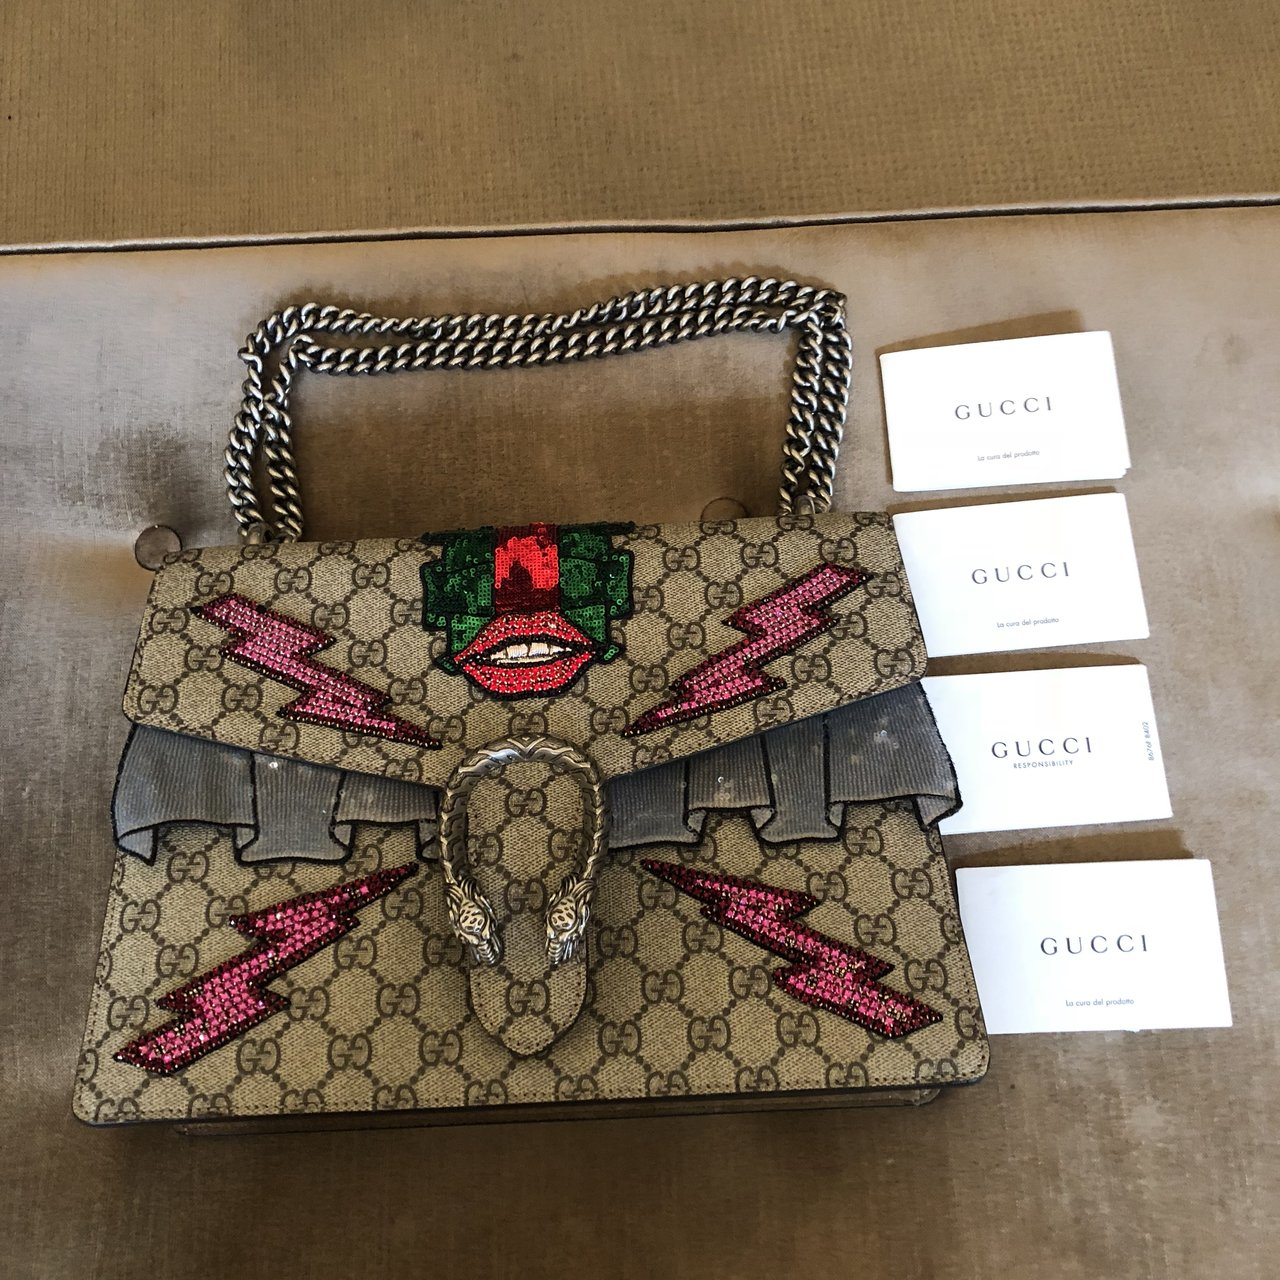 fedb159f69d @thecrownjewels. 17 days ago. London, United Kingdom. GUCCI DIONYSUS GG  SUPREME LIGHTNING CANVAS SHOULDER BAG ...